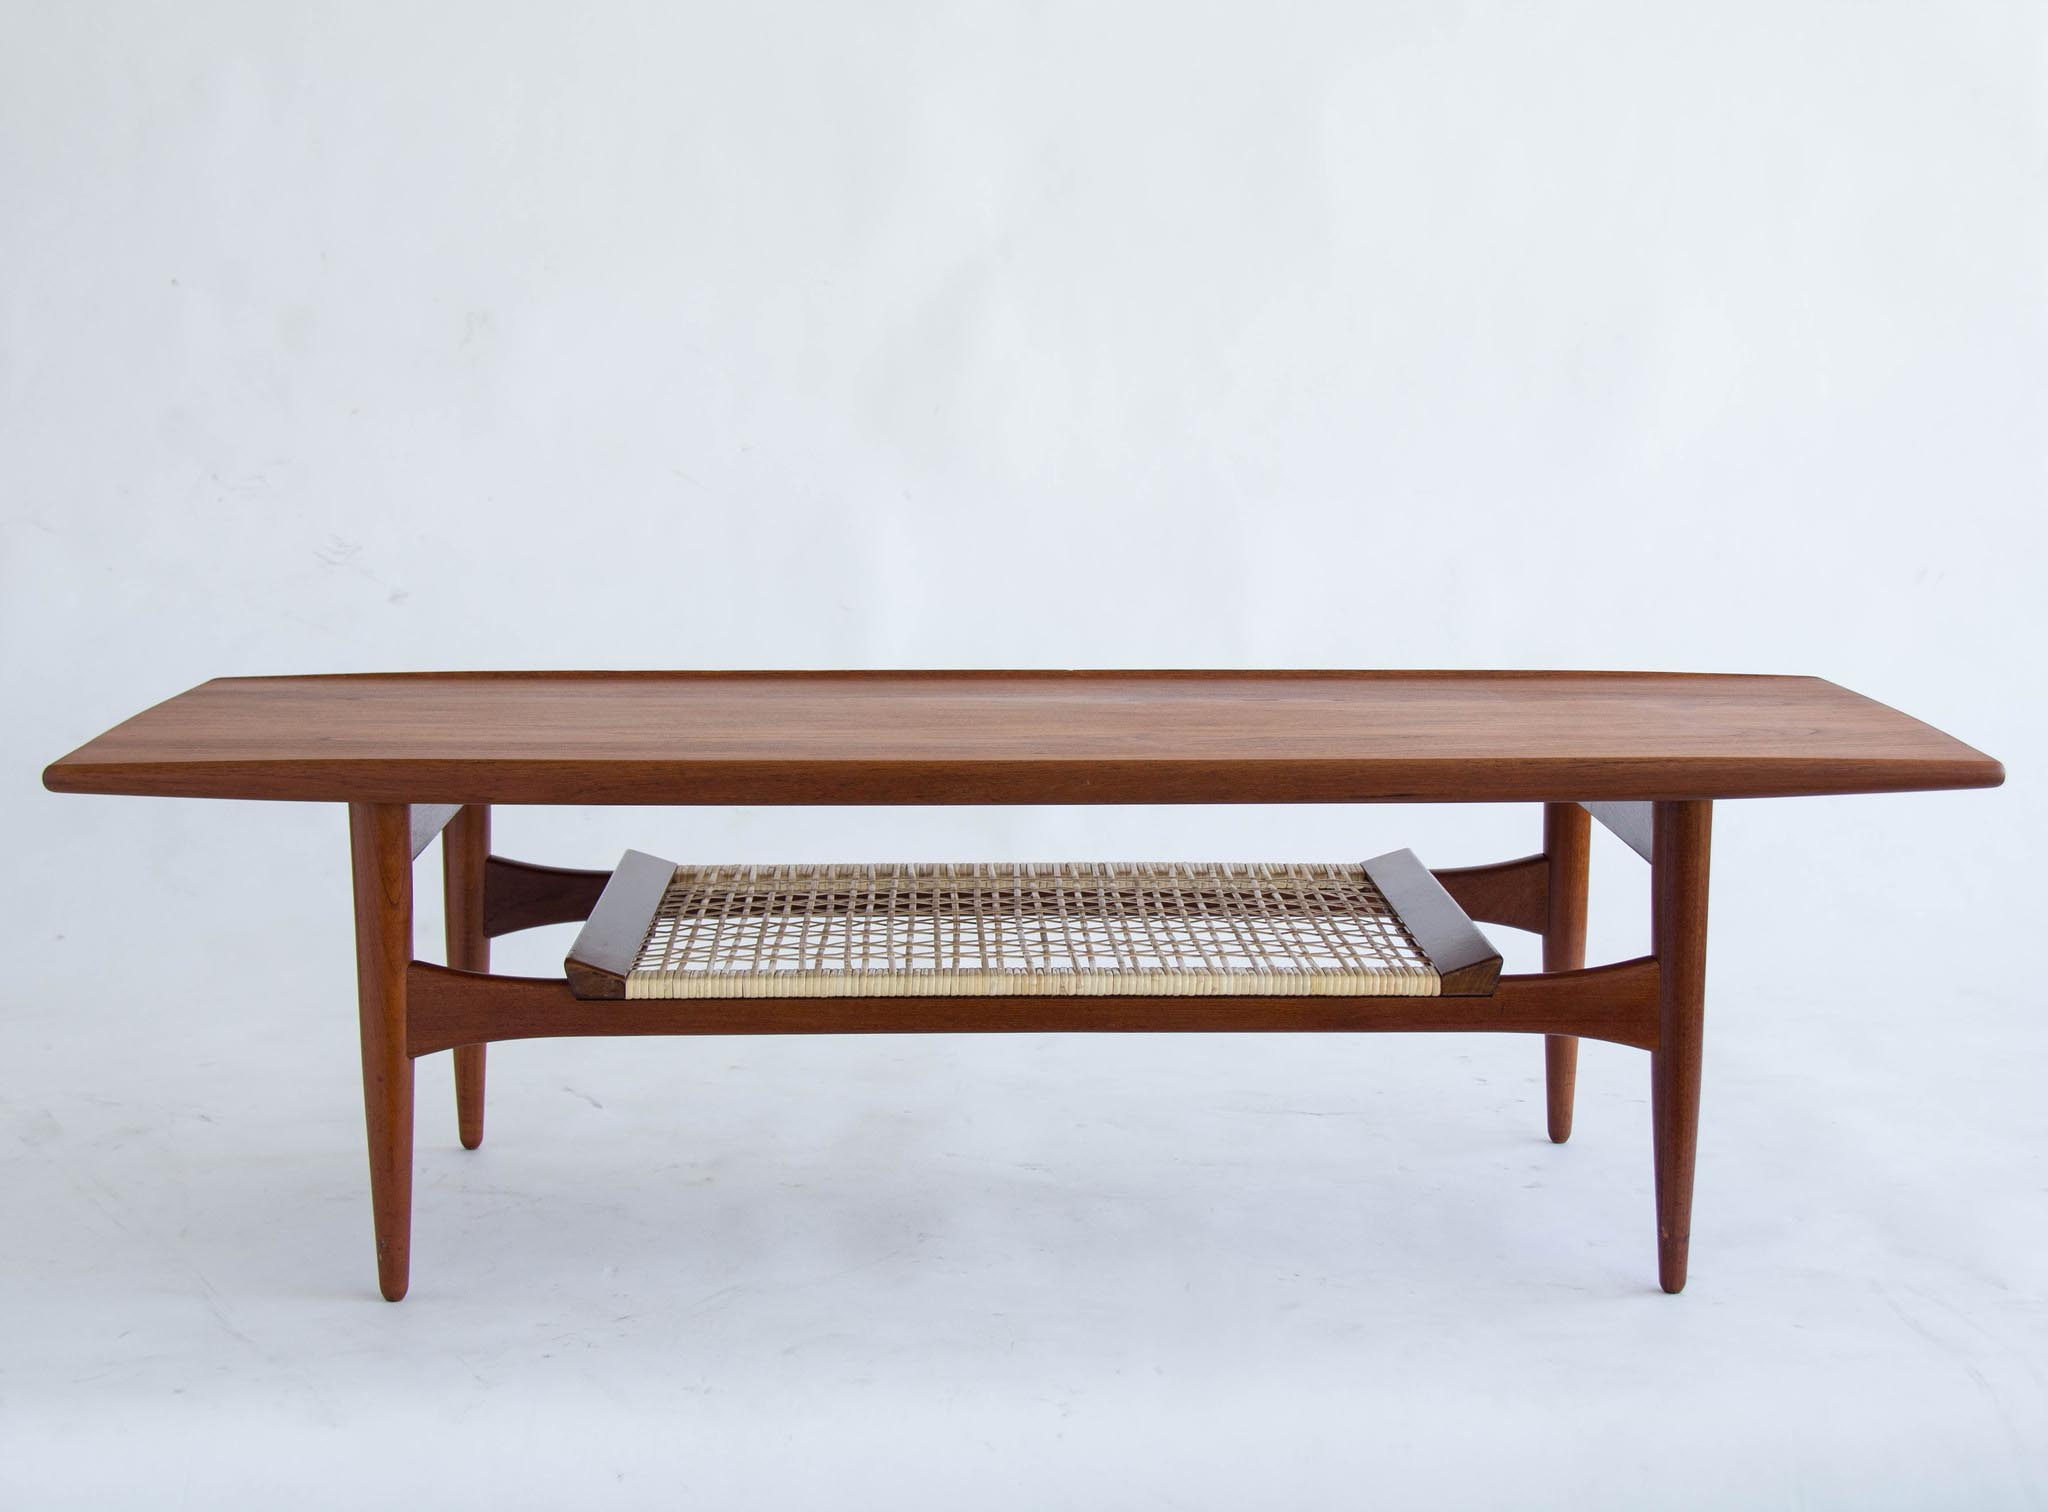 Teak Coffee Table with Shelf